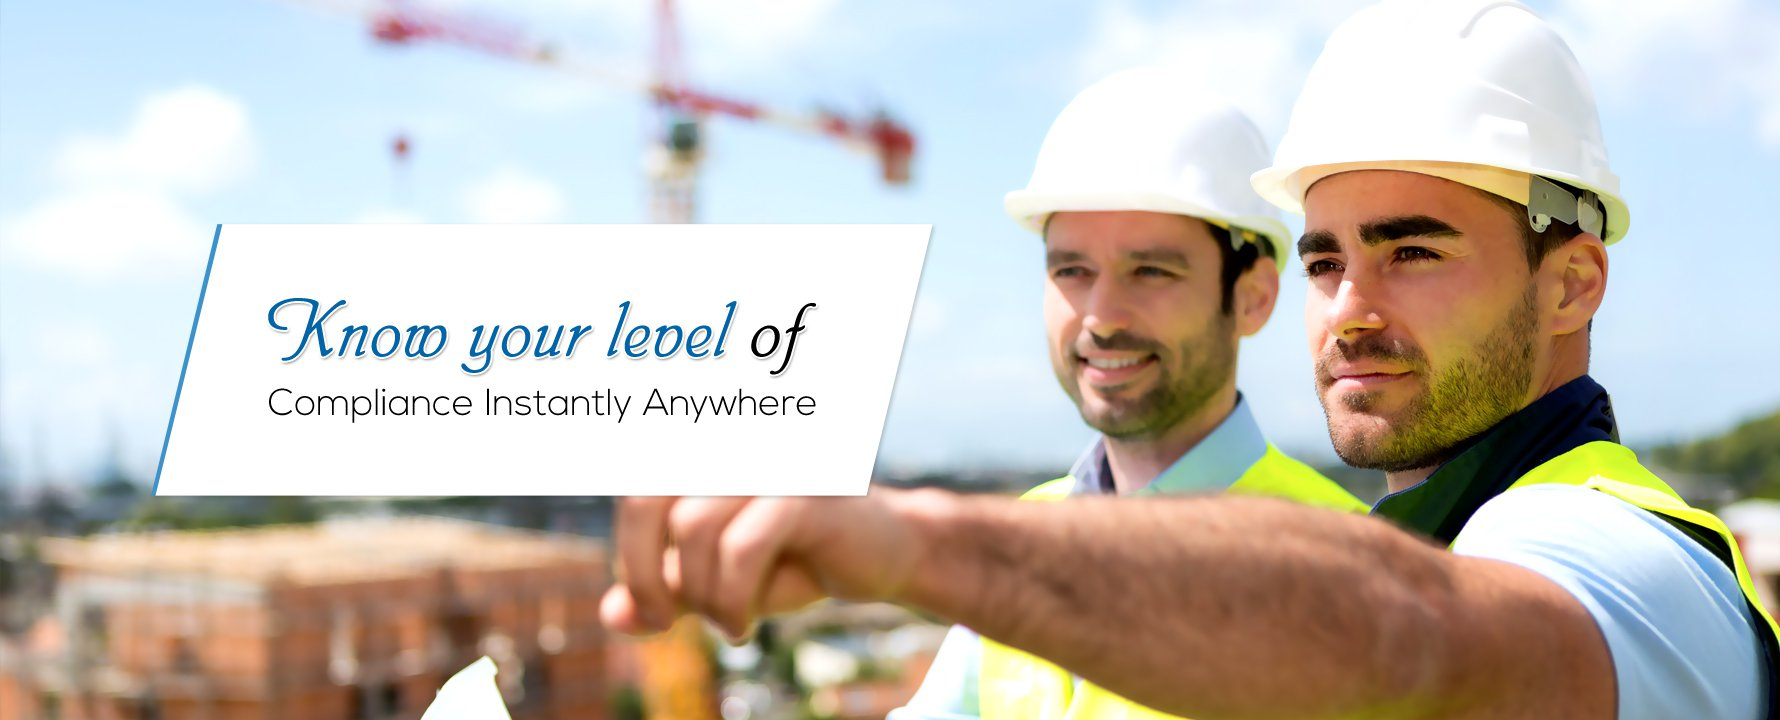 Know your level of compliance instantly anywhere